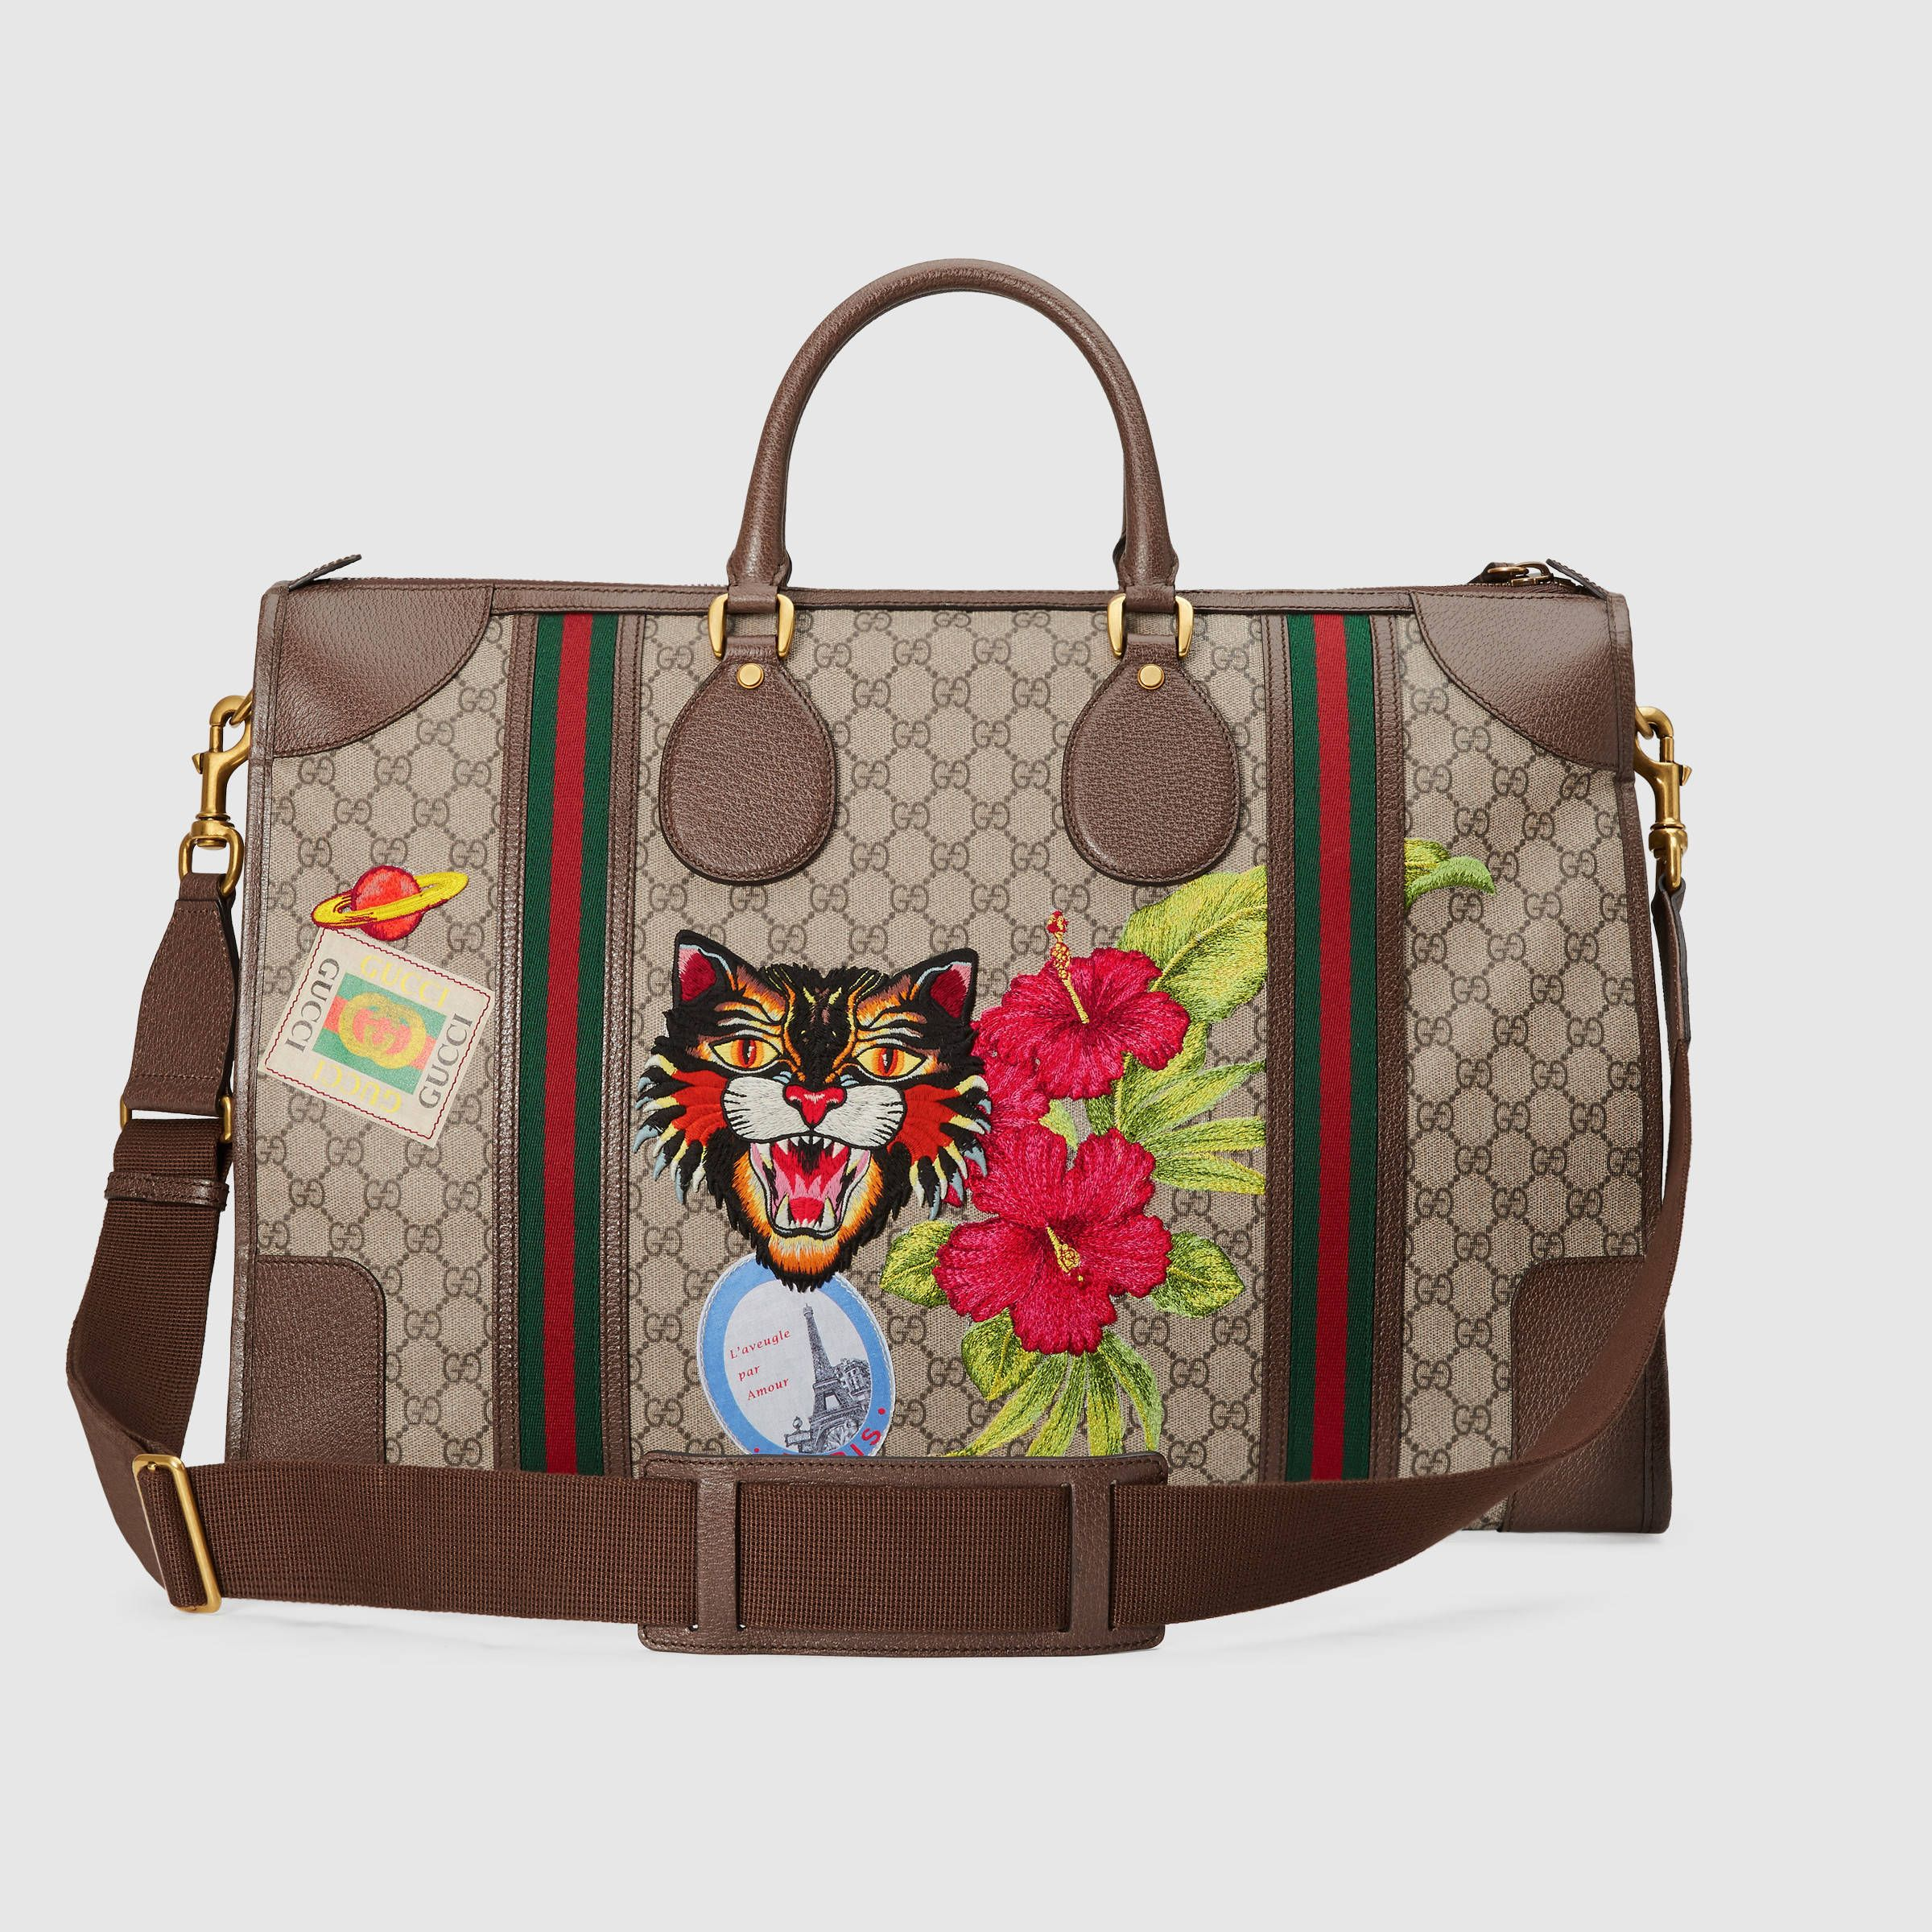 46c17ba48003 Gucci Courrier soft GG Supreme duffle bag | Bags, Bags and more Bags ...